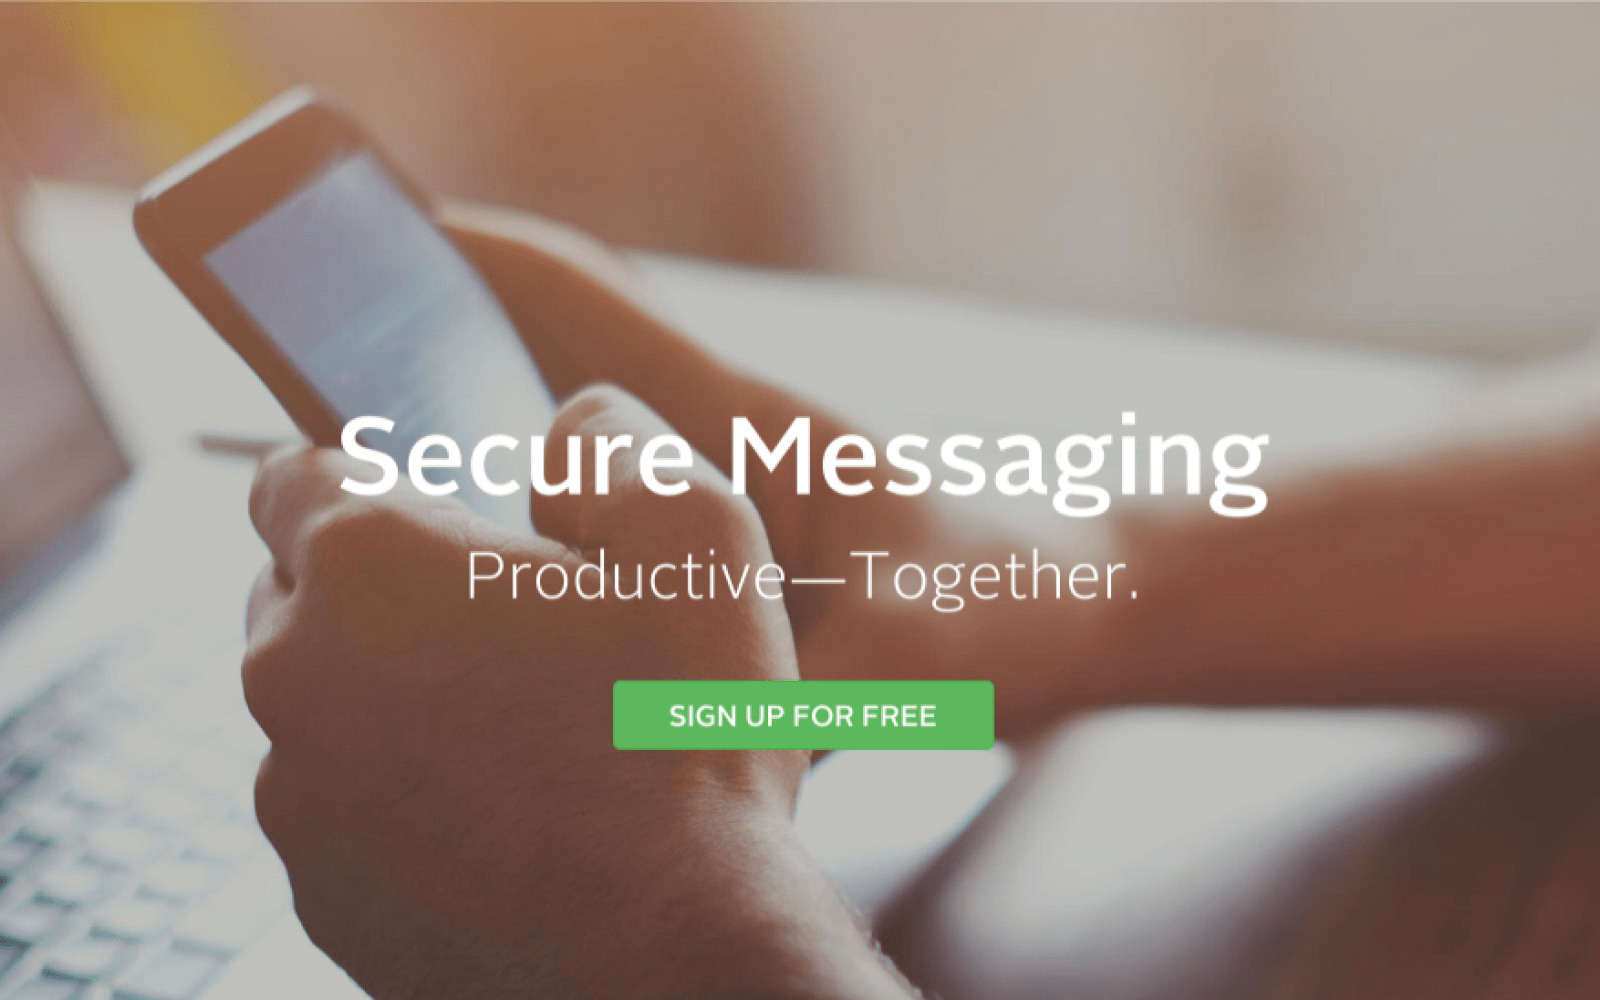 Google takes part in $100 million funding round for secure messaging startup Symphony